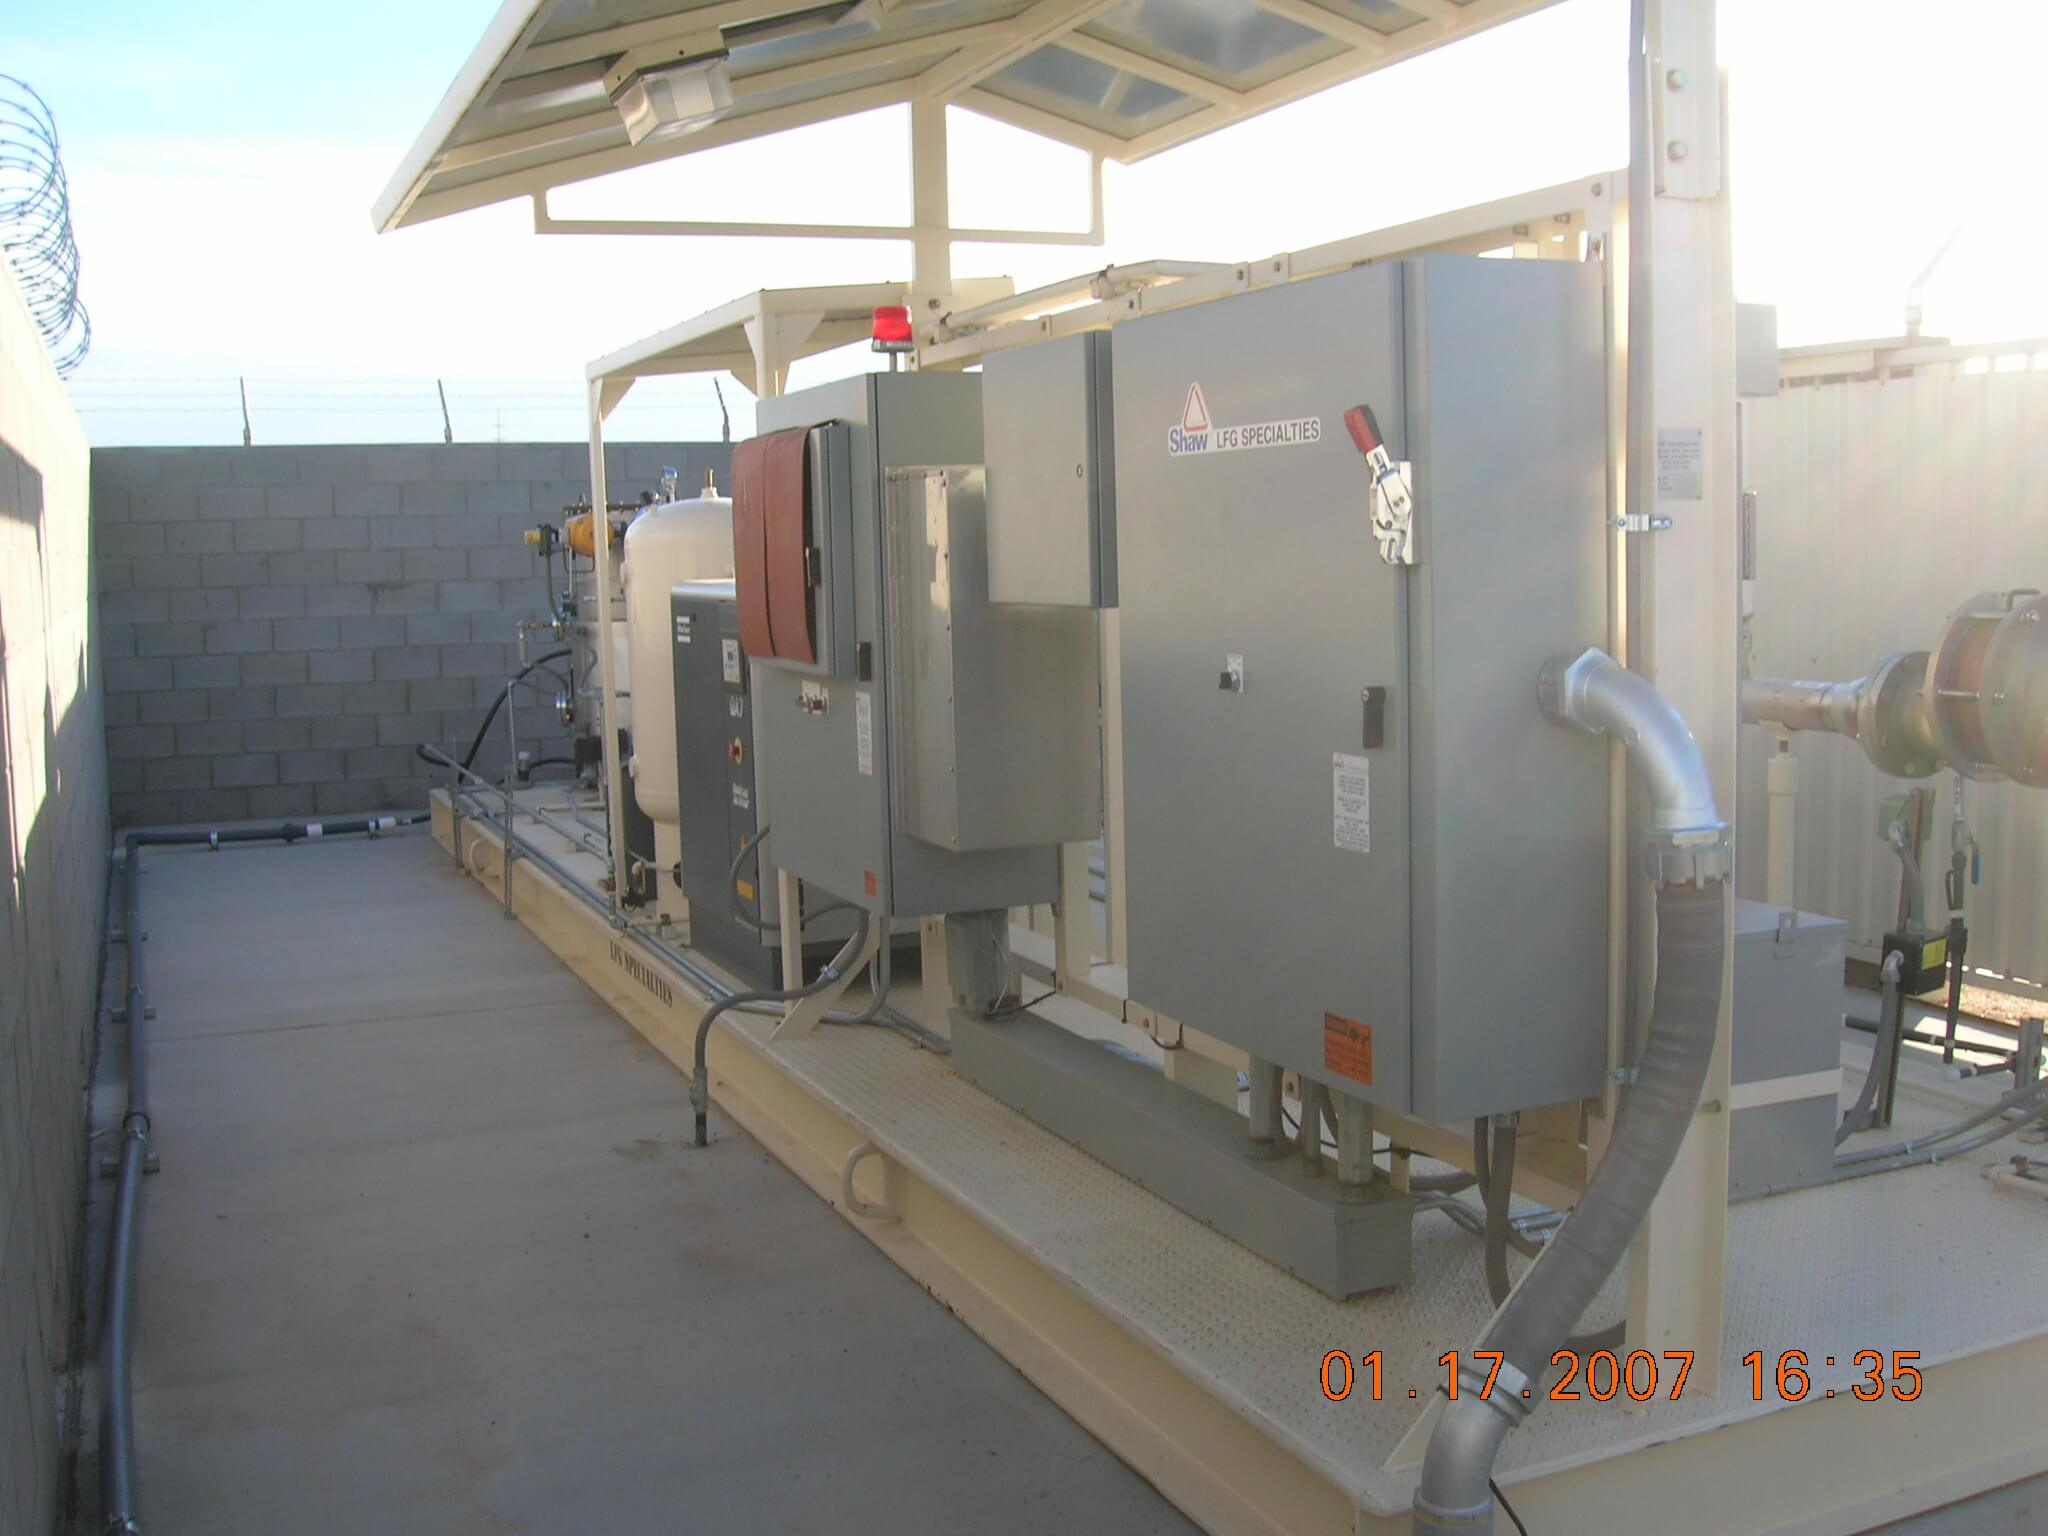 Landfill Gas Control and Remediation Systems O&M